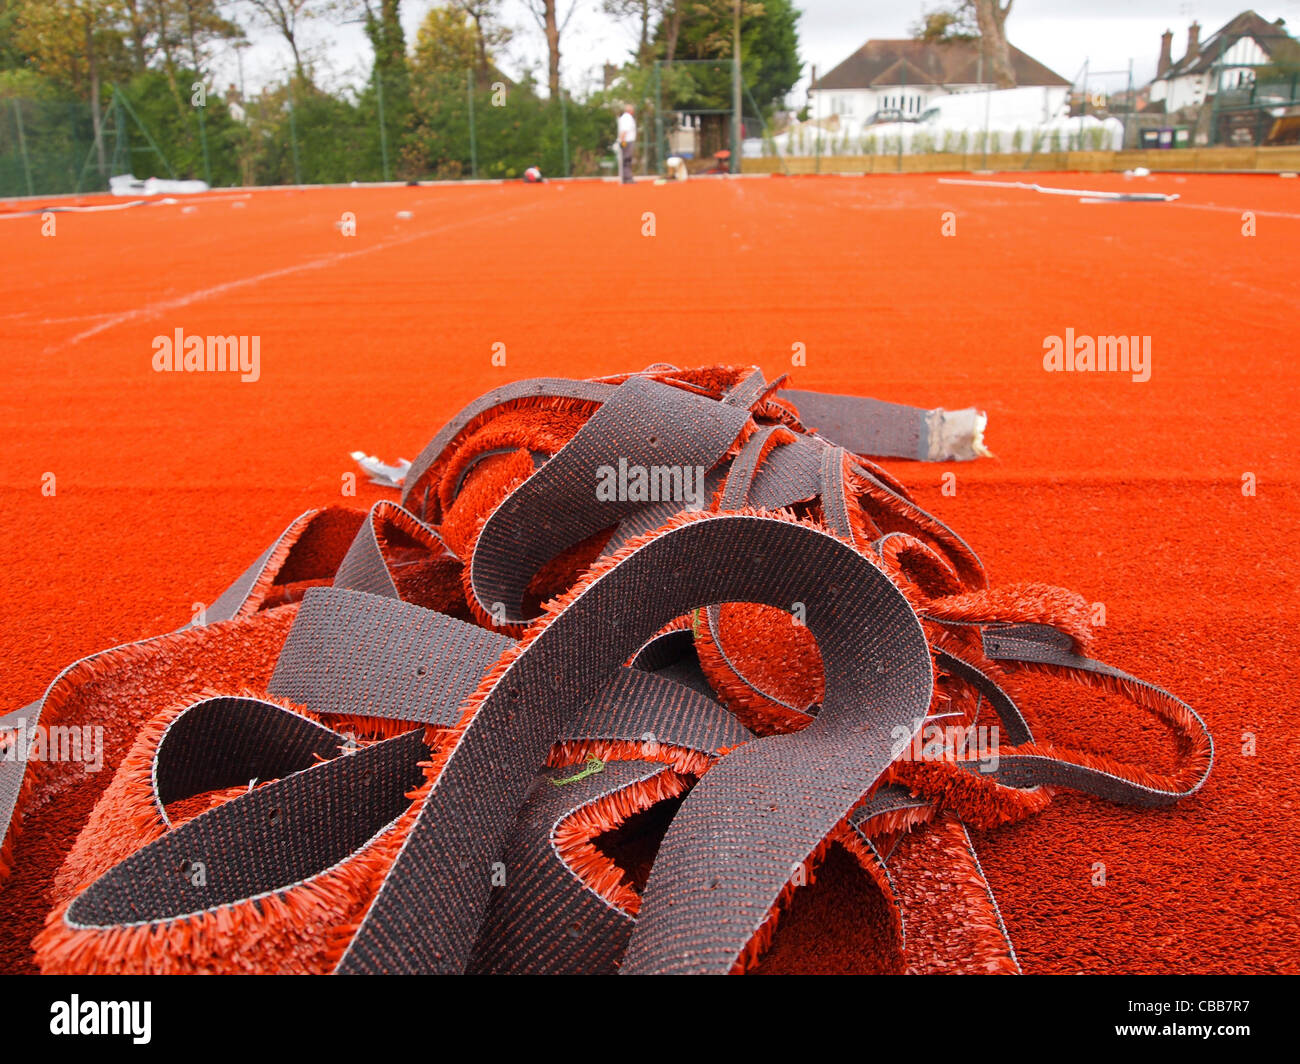 Clay Tennis Courts Photos & Clay Tennis Courts Images - Alamy